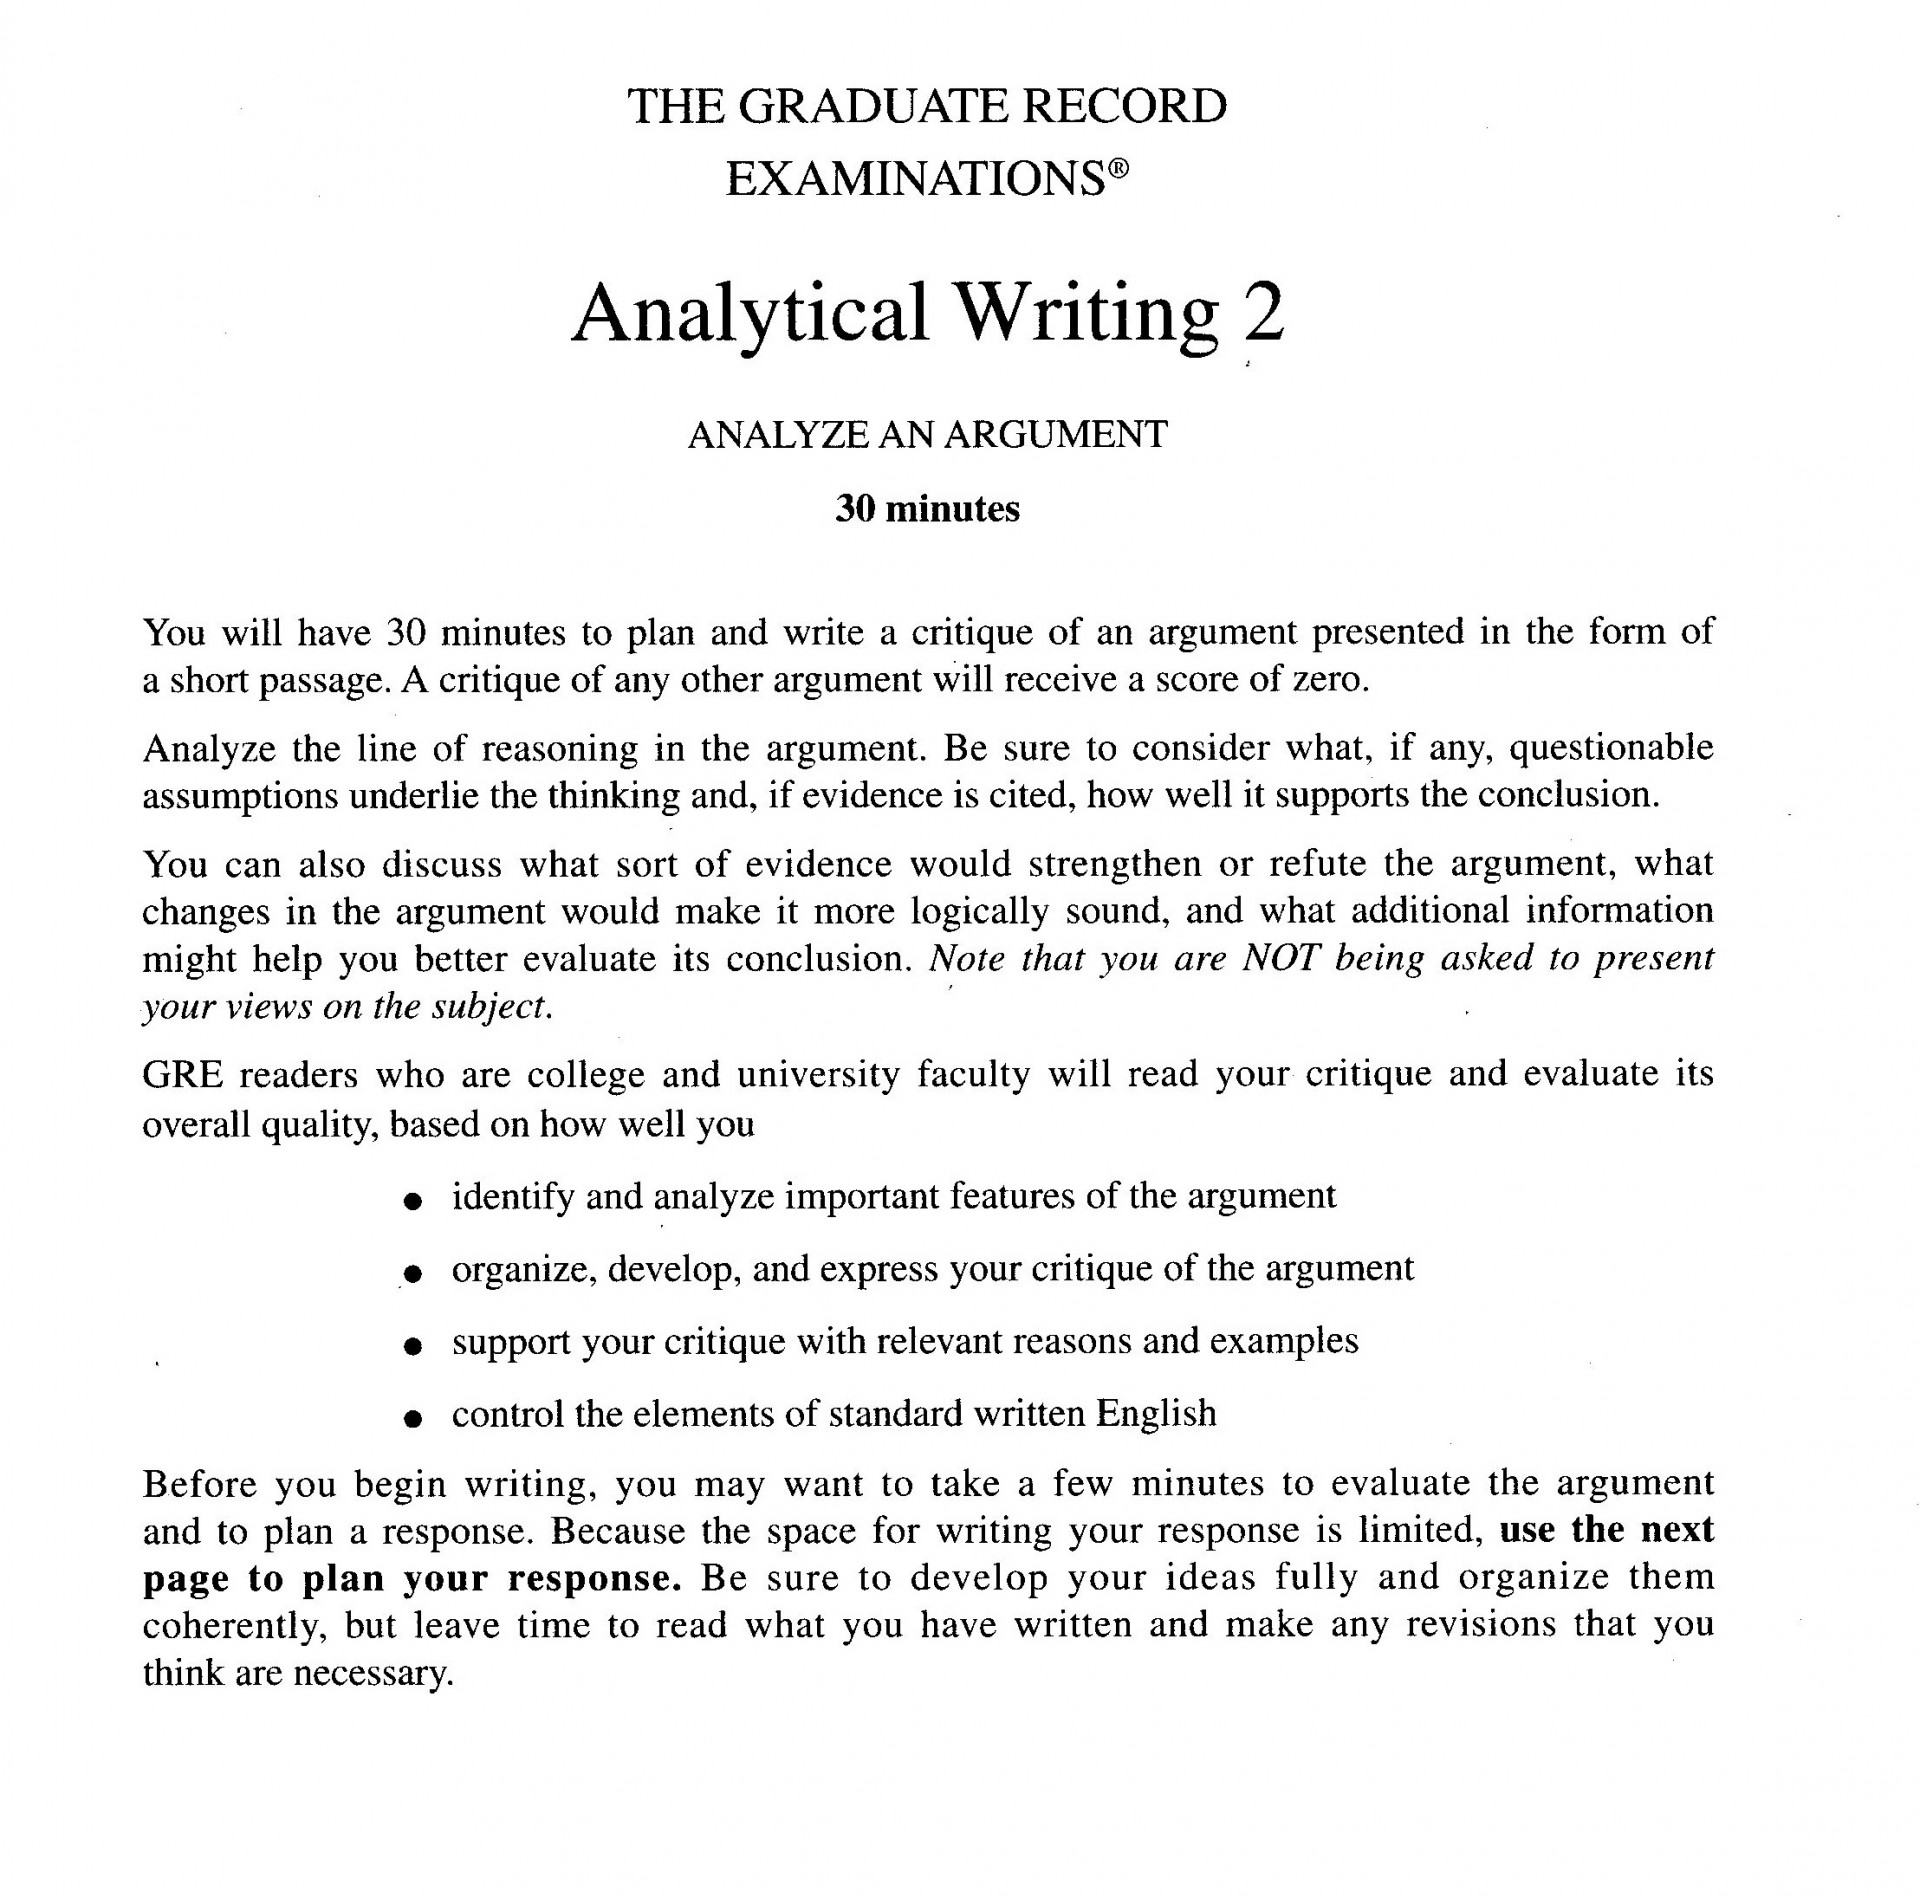 006 Analytical Writing Response Task Directions For Gre Samples Essay Example Sample Unique Essays Topics Practice Prompts Argument 1920